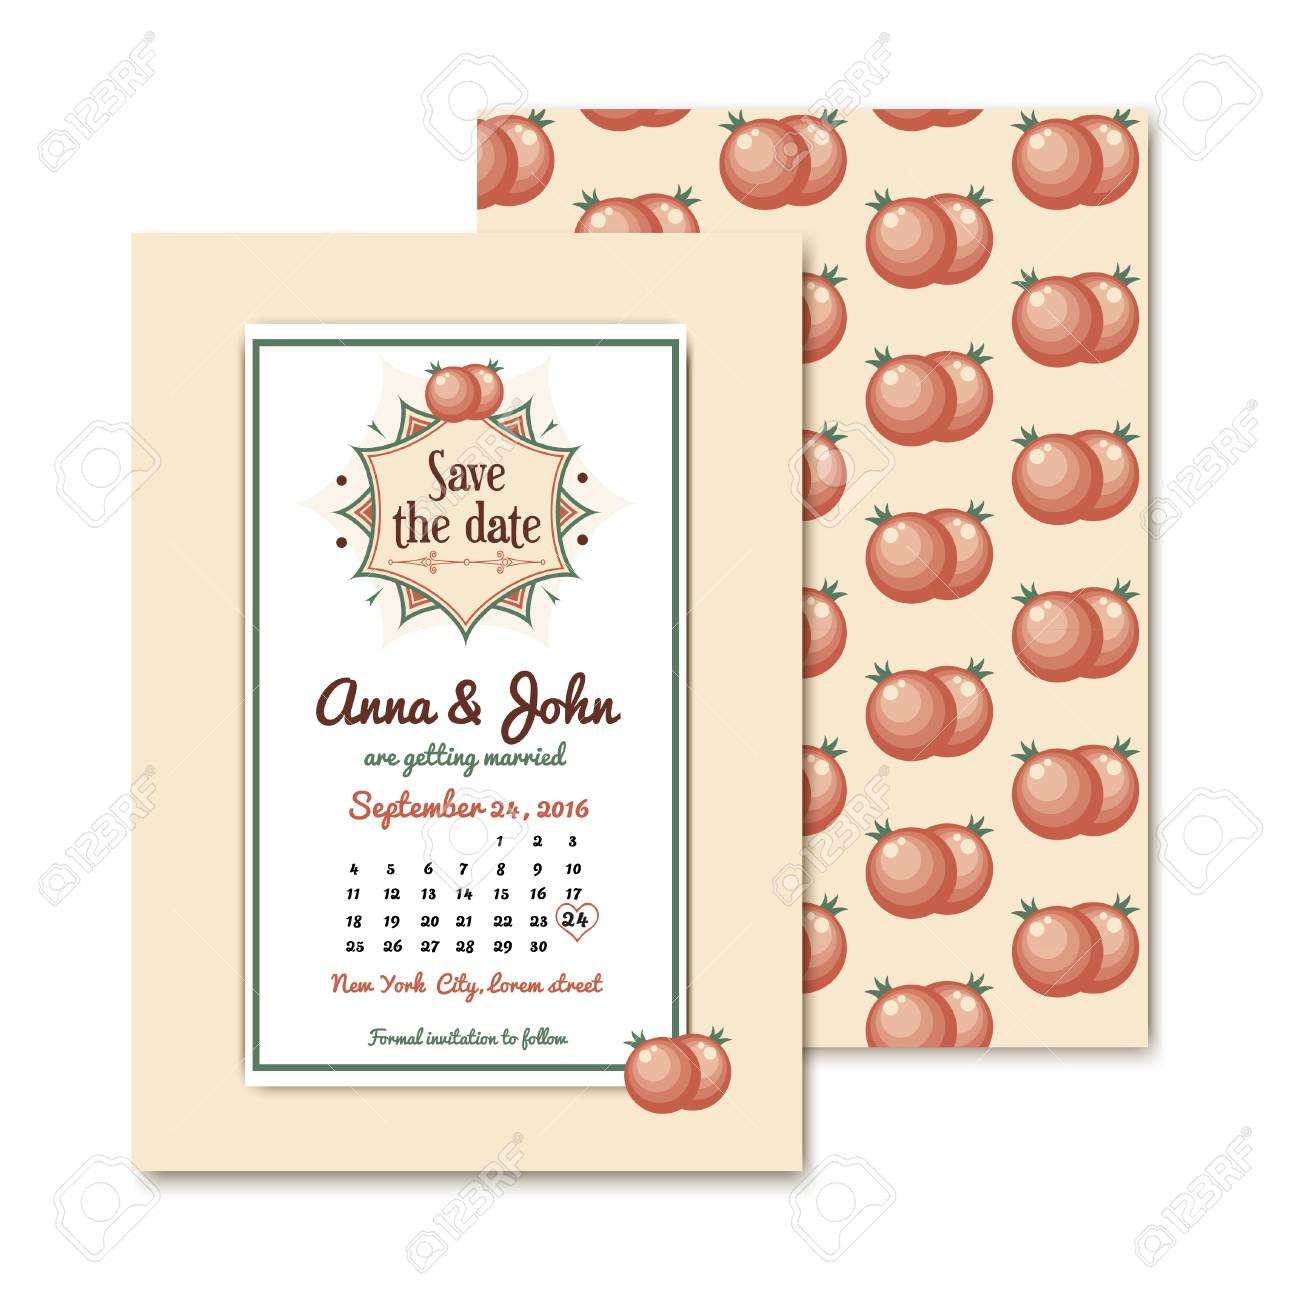 Vintage Wedding Invitation With Space For The Date Of The Wedding ...